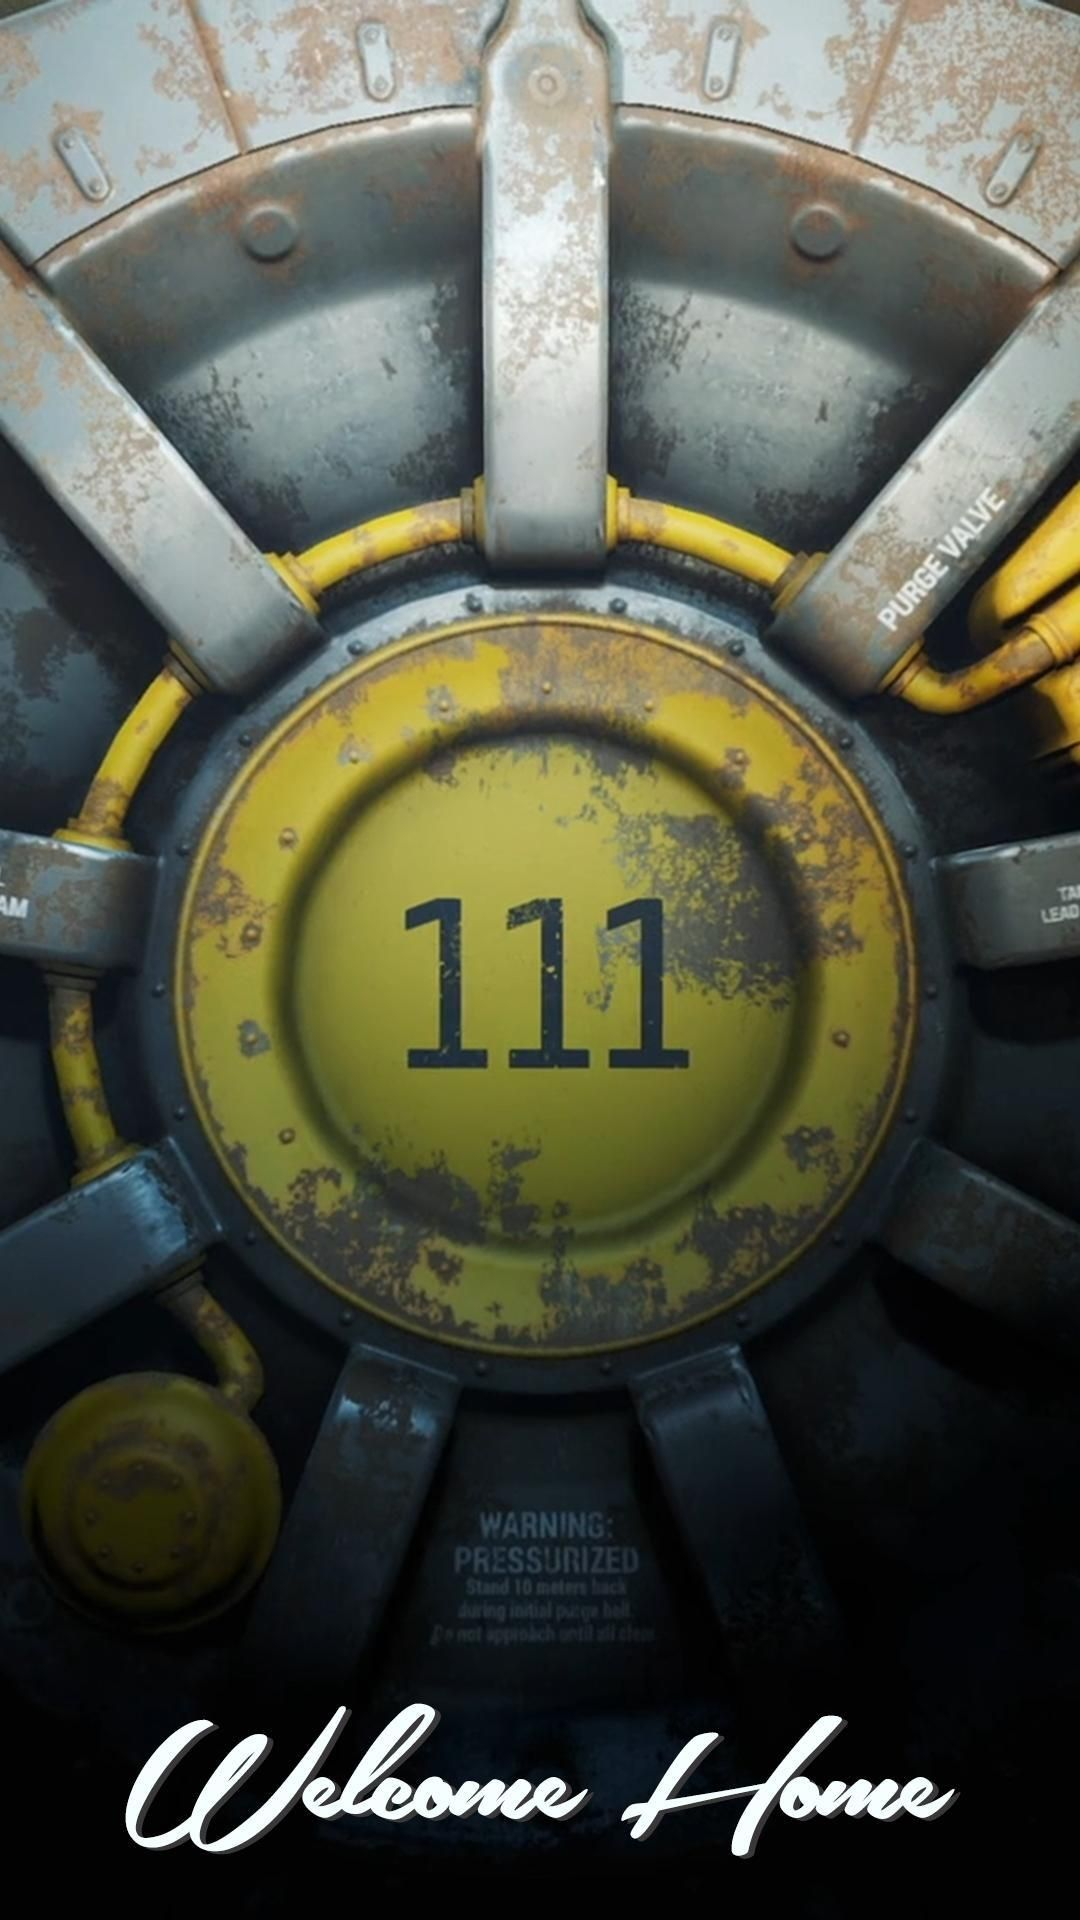 High Resolution Fallout Iphone Wallpaper ipcwallpapers